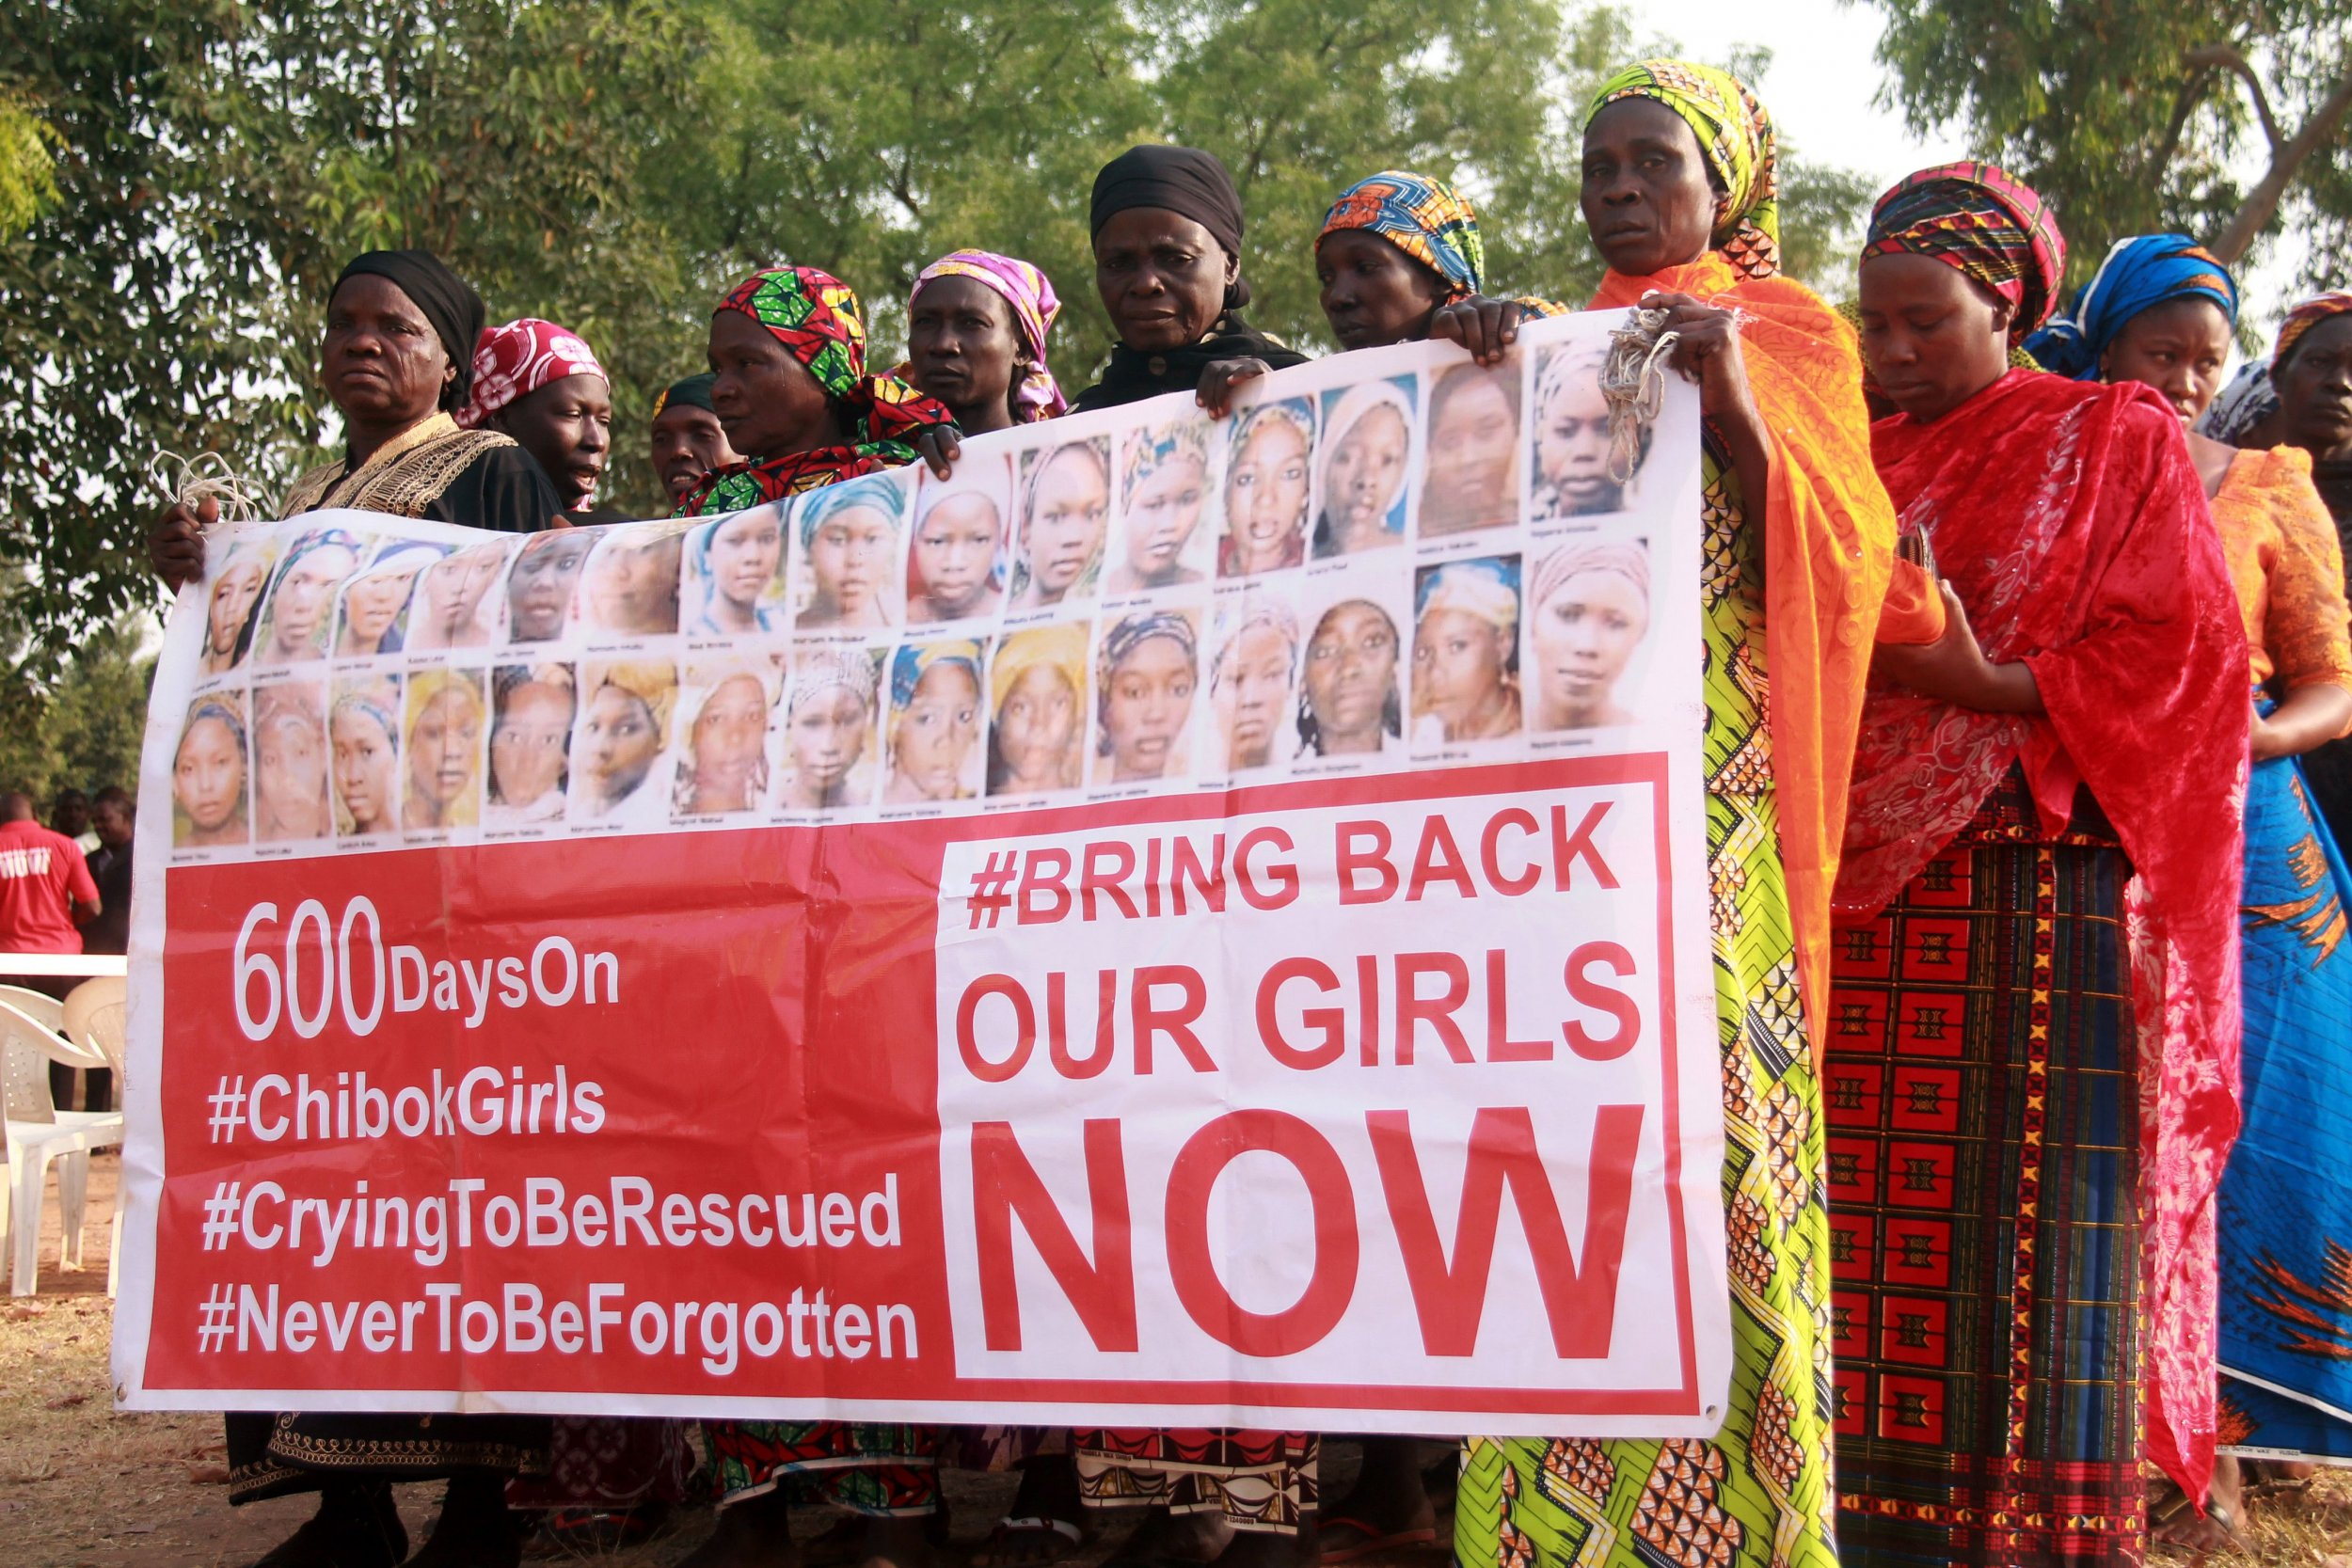 Chibok girls campaigners at a rally in Abuja.